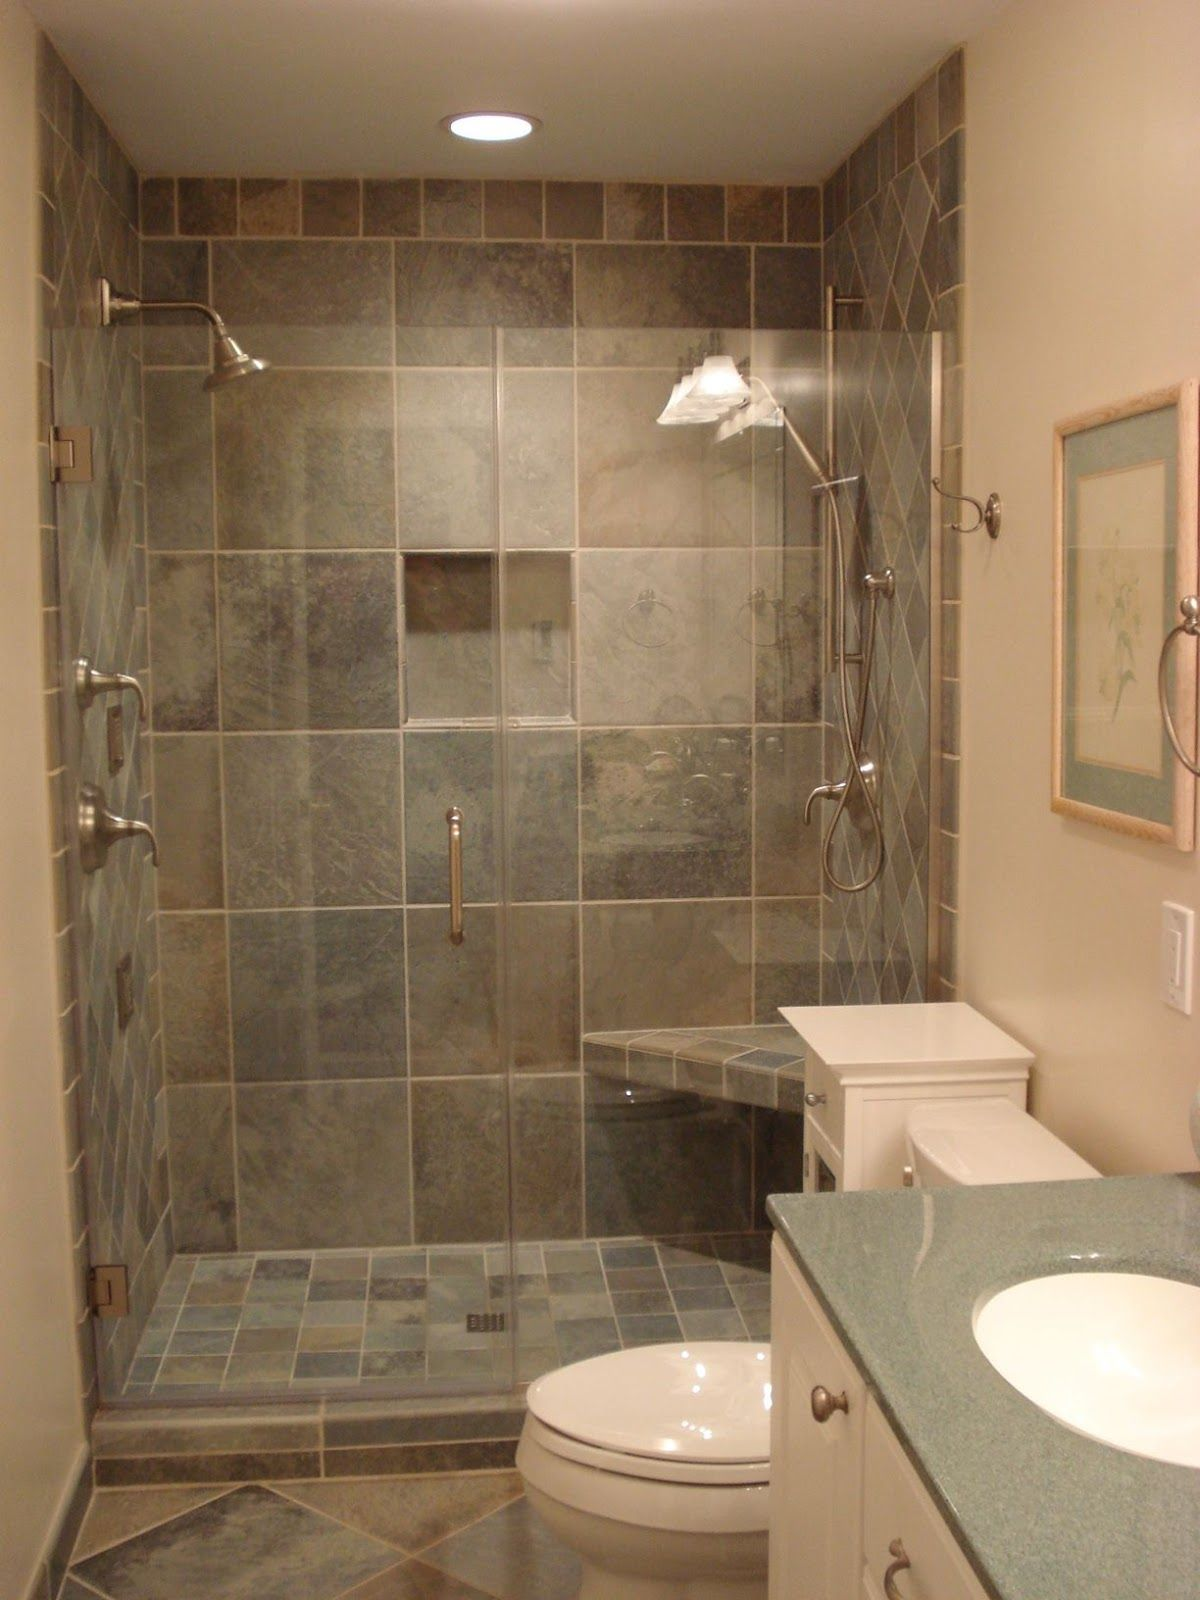 30 Best Bathroom Remodel Ideas You Must Have A Look Small Small Bathroom Remodel Bathroom Remodel Shower Shower Remodel